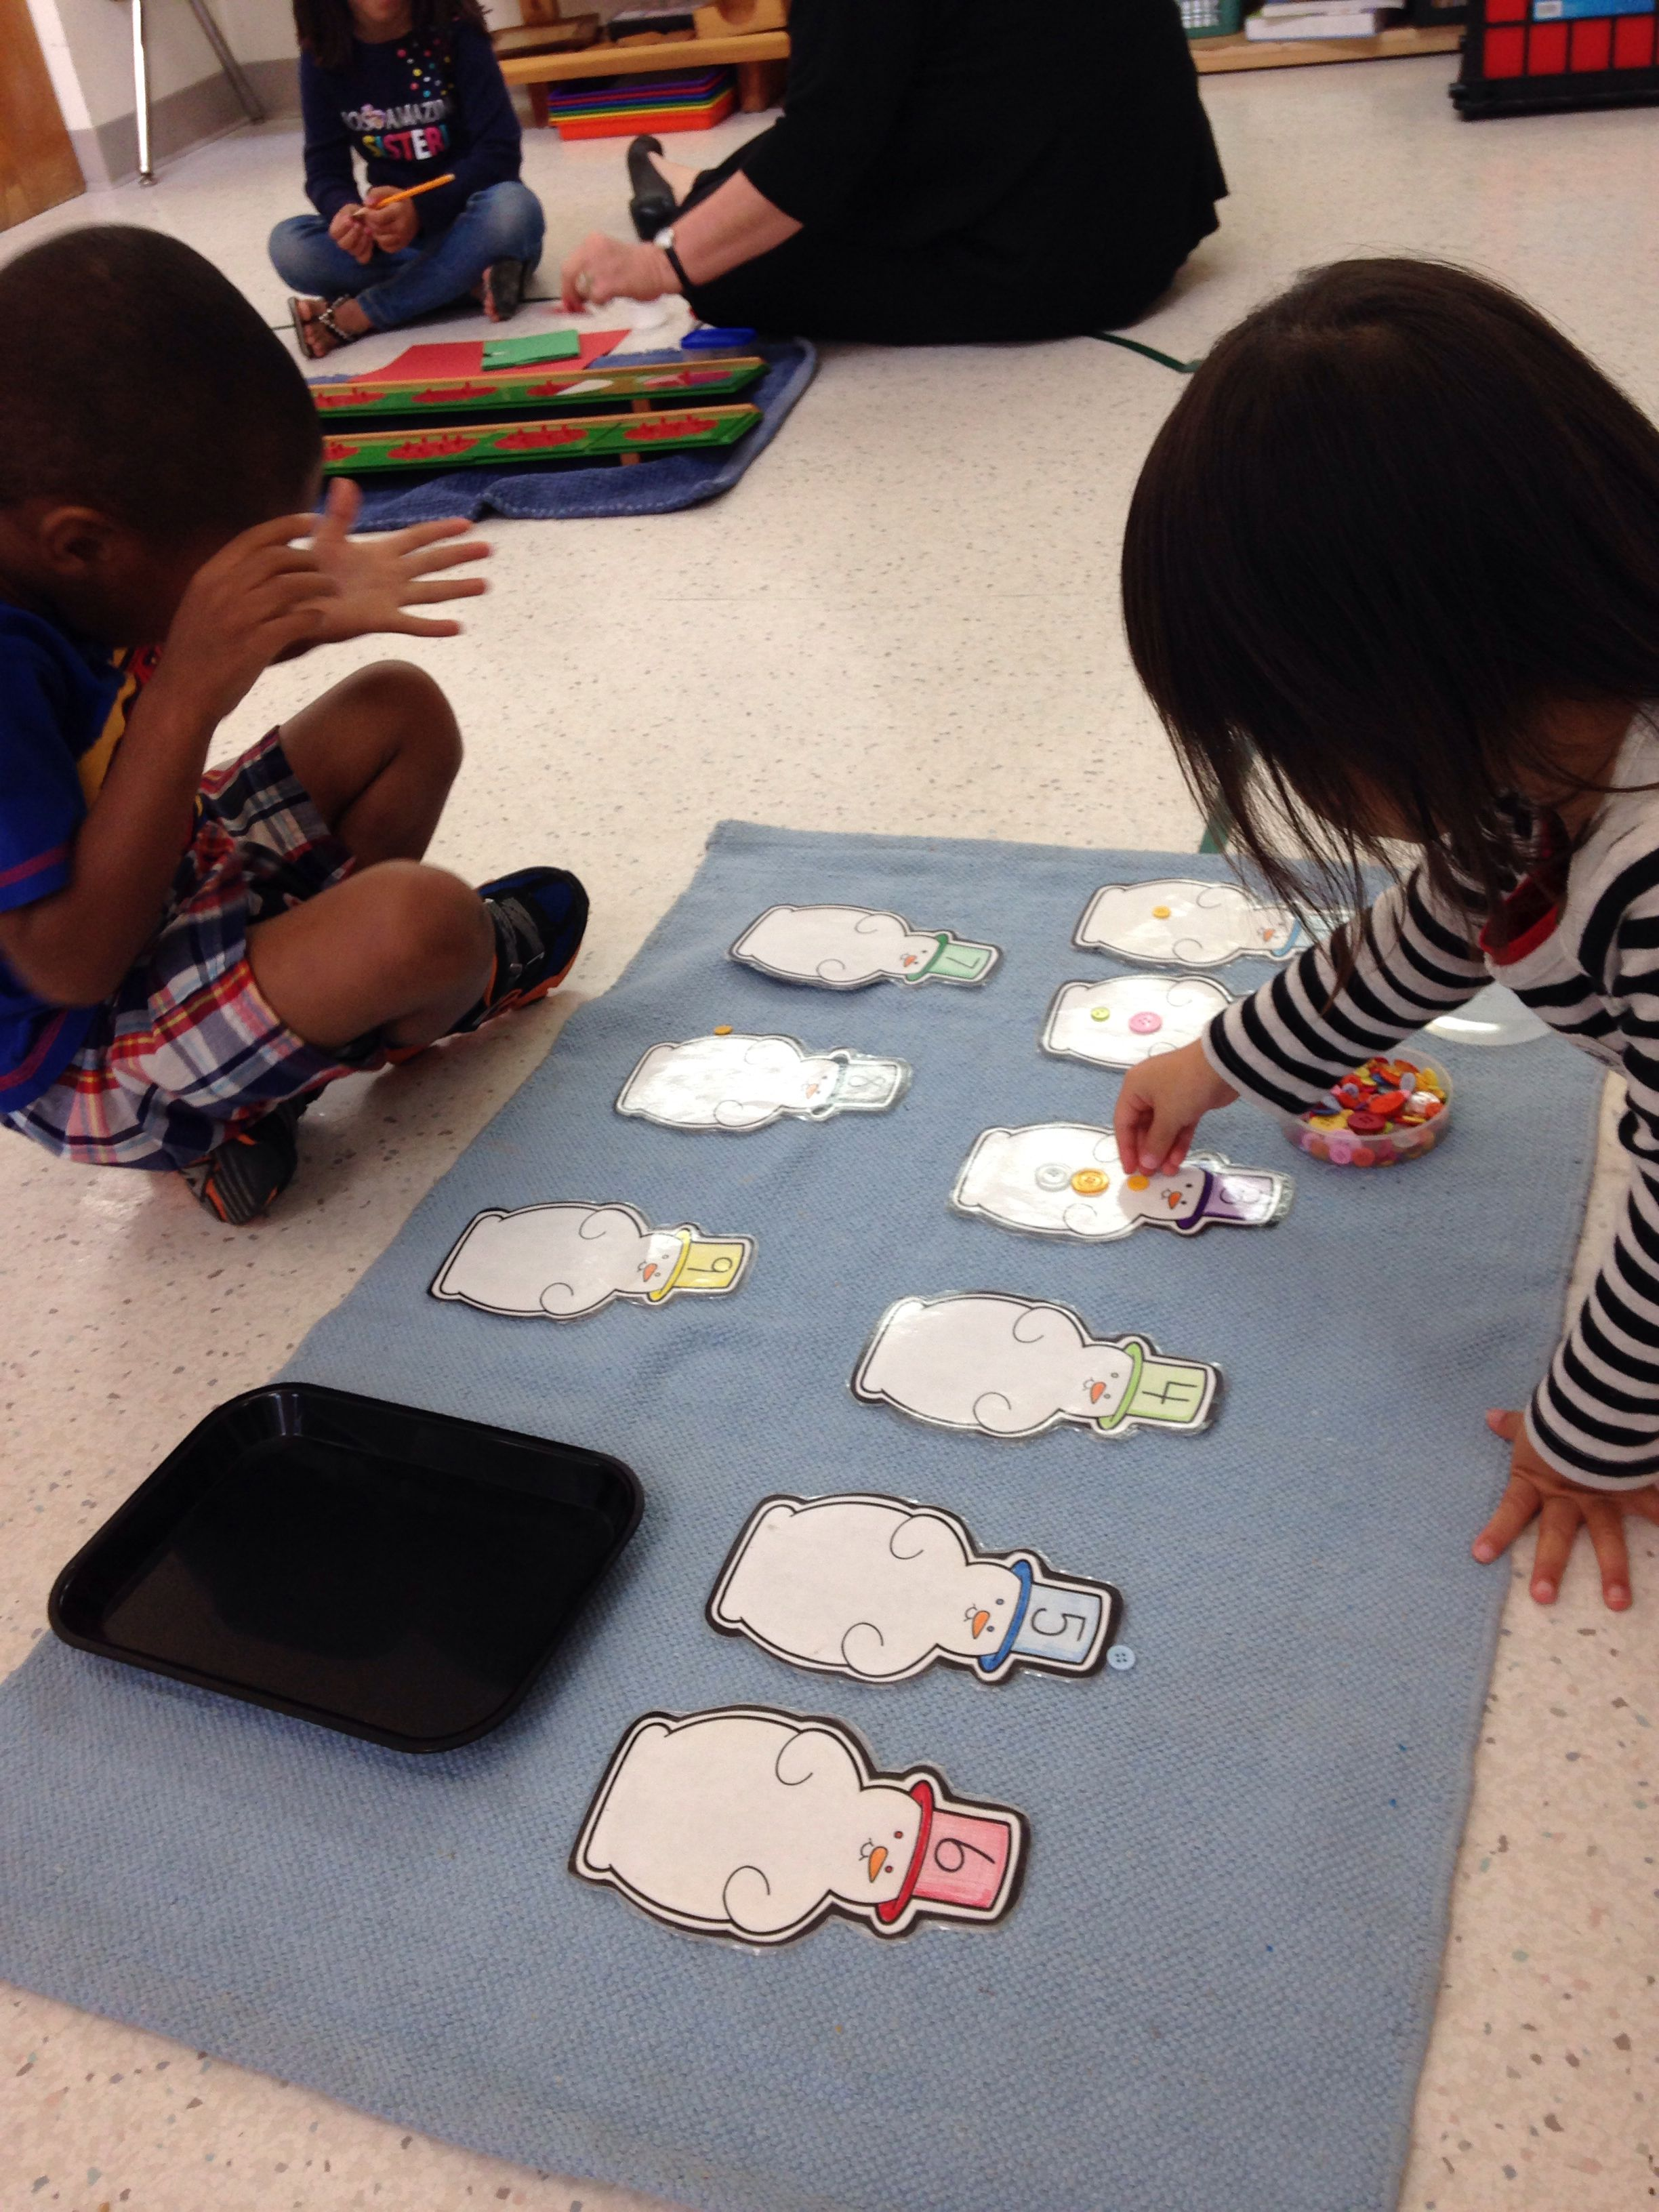 Learning Number Association By Placing Buttons On The Number On The